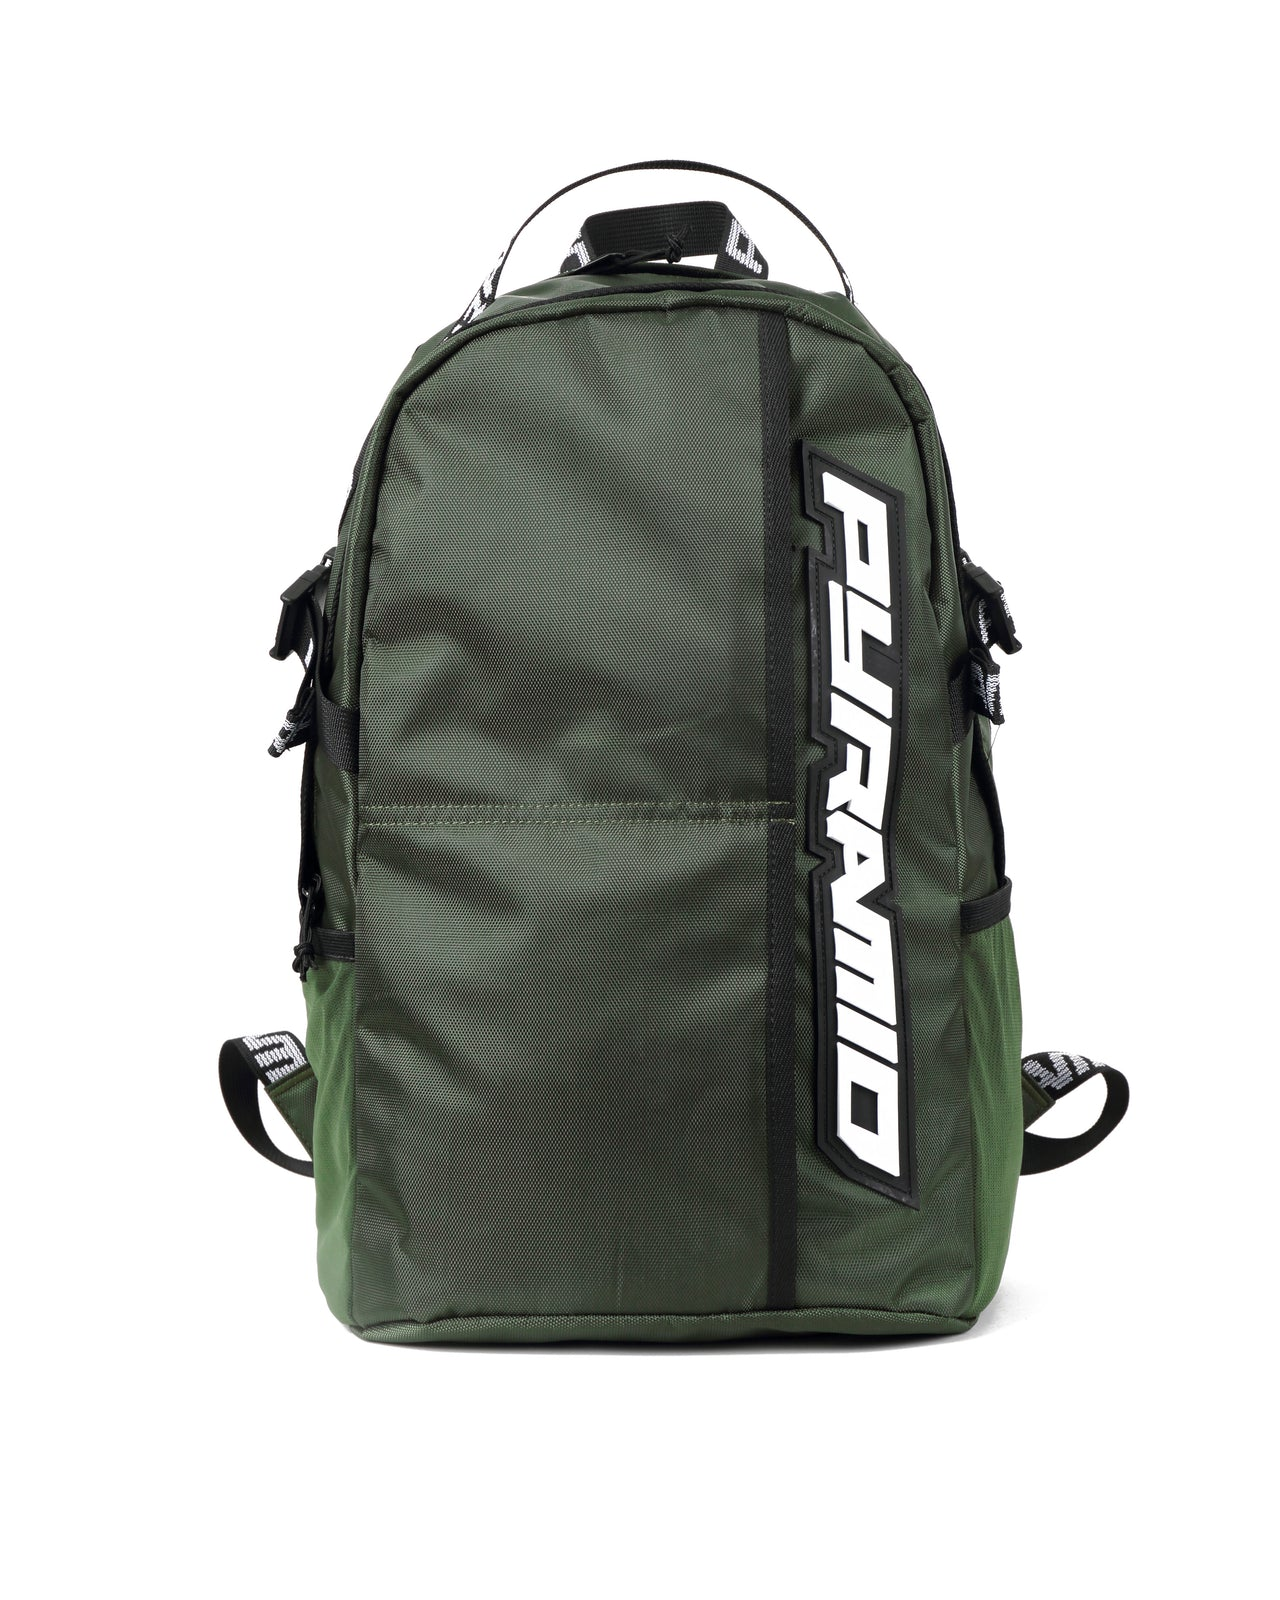 PYRAMID BACKPACK - Color: Olive | Green